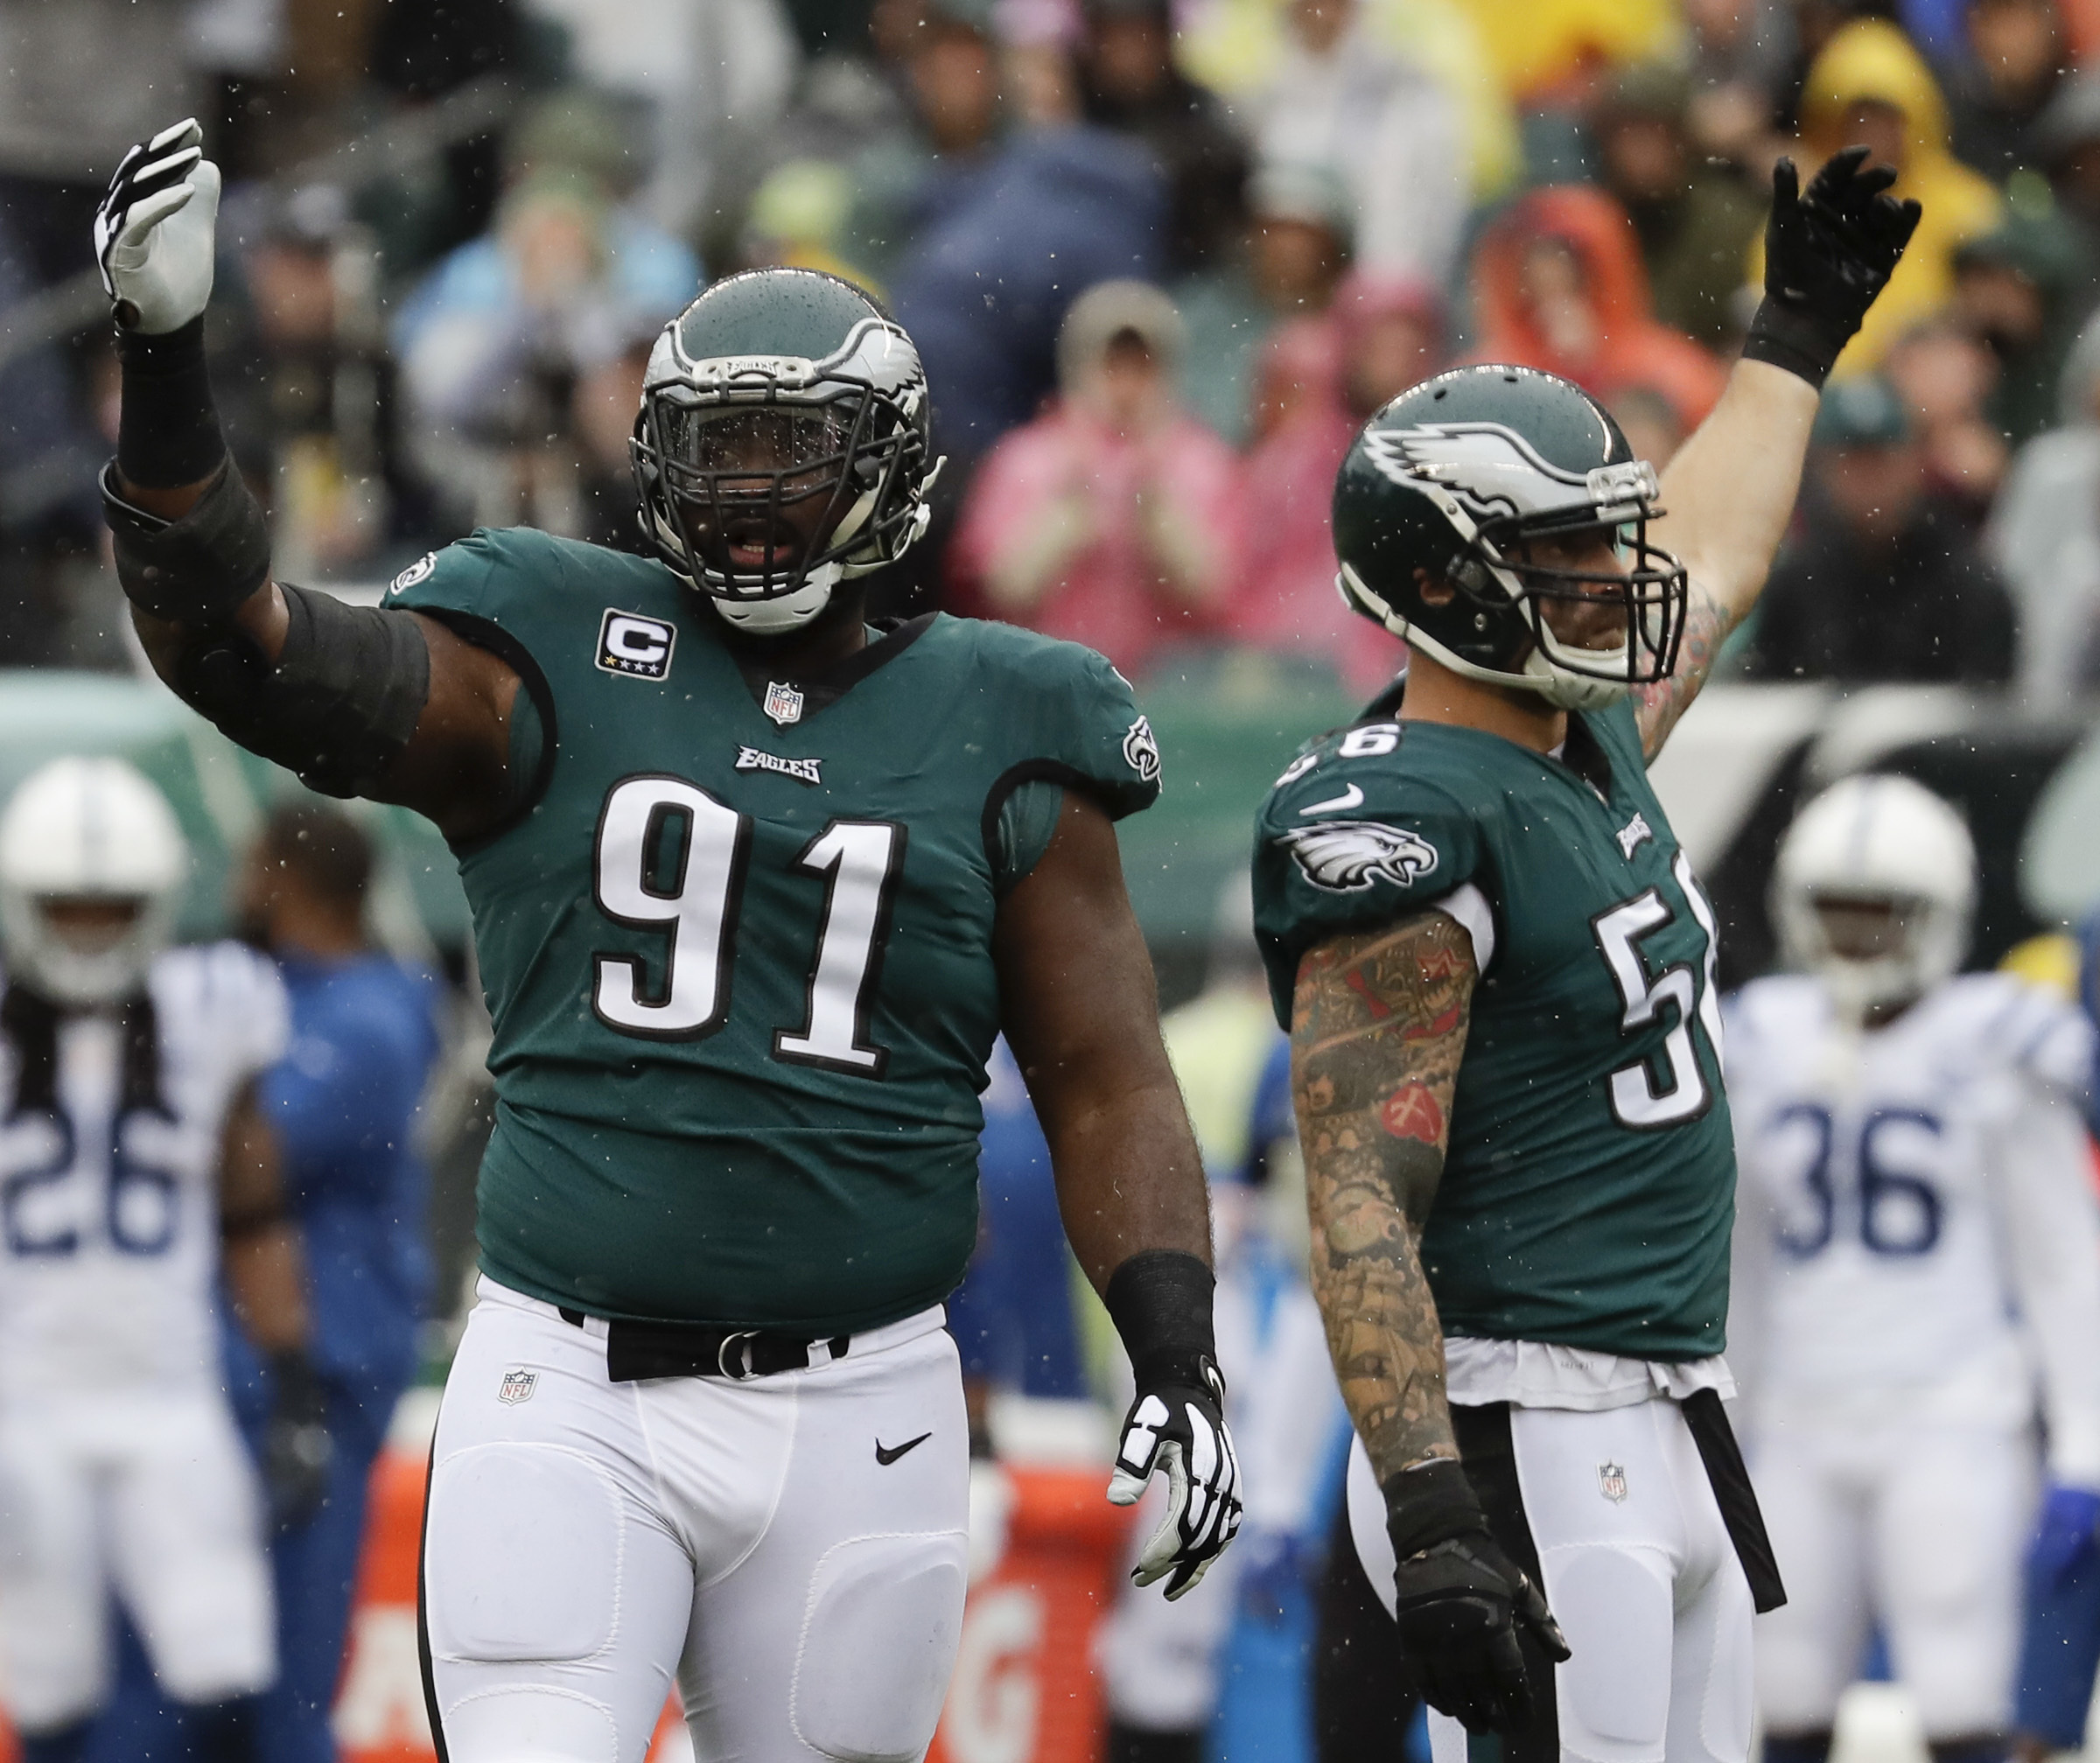 Eagles defensive end Fletcher Cox and defensive end Chris Long raise their arms during the game against the Colts.